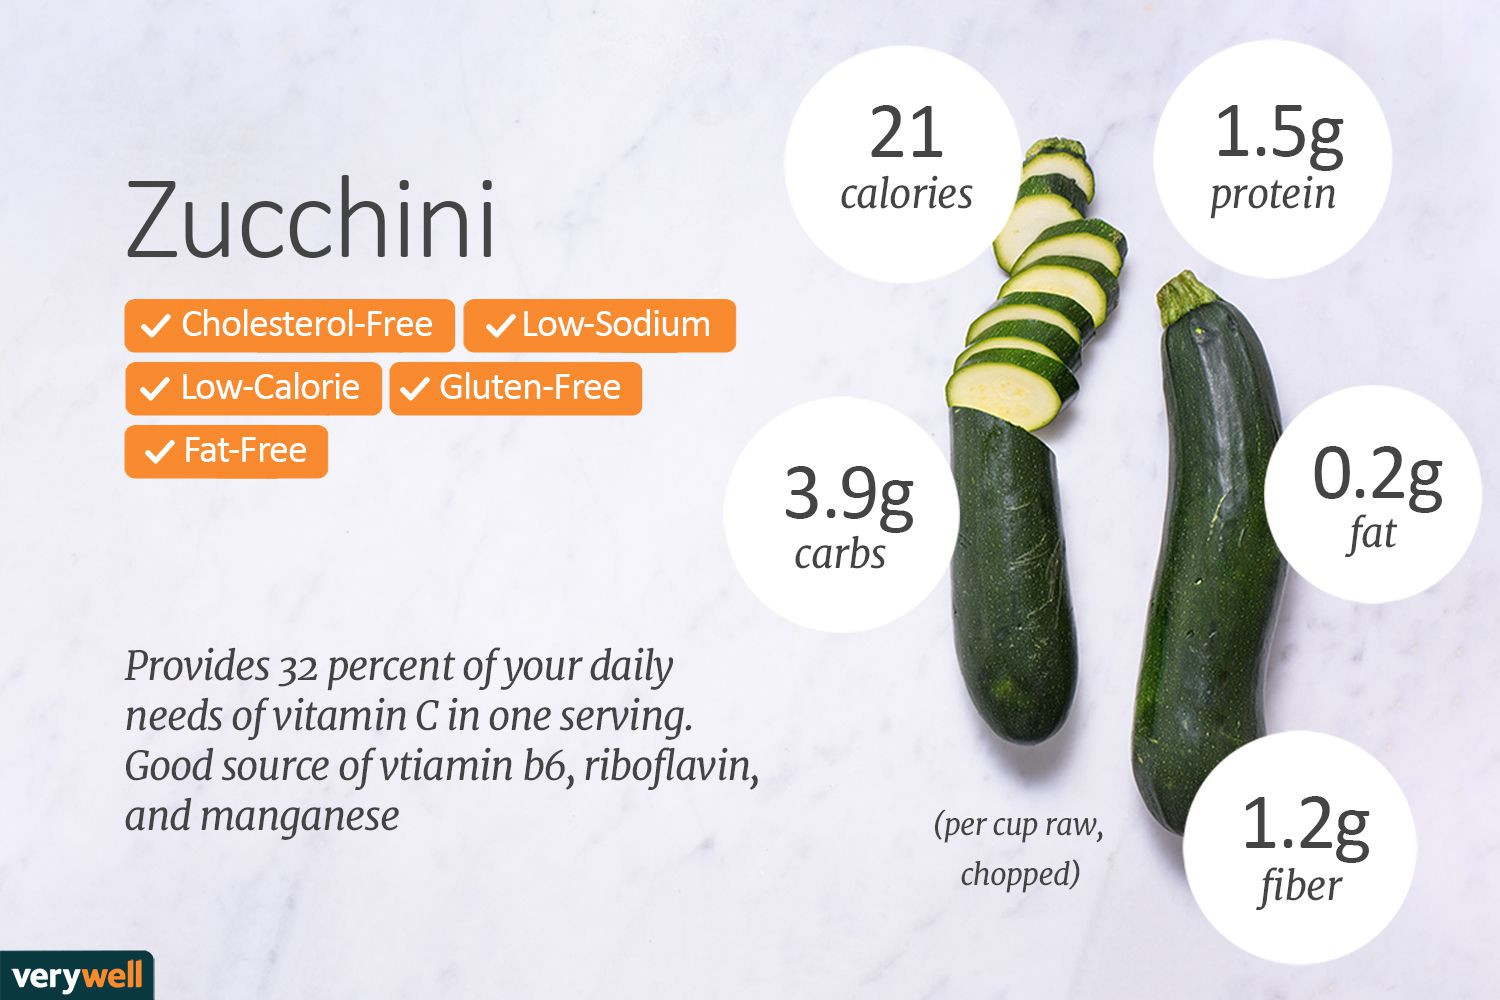 Summer Squash Nutrition  Summer Squash and Zucchini Nutrition Facts Calories